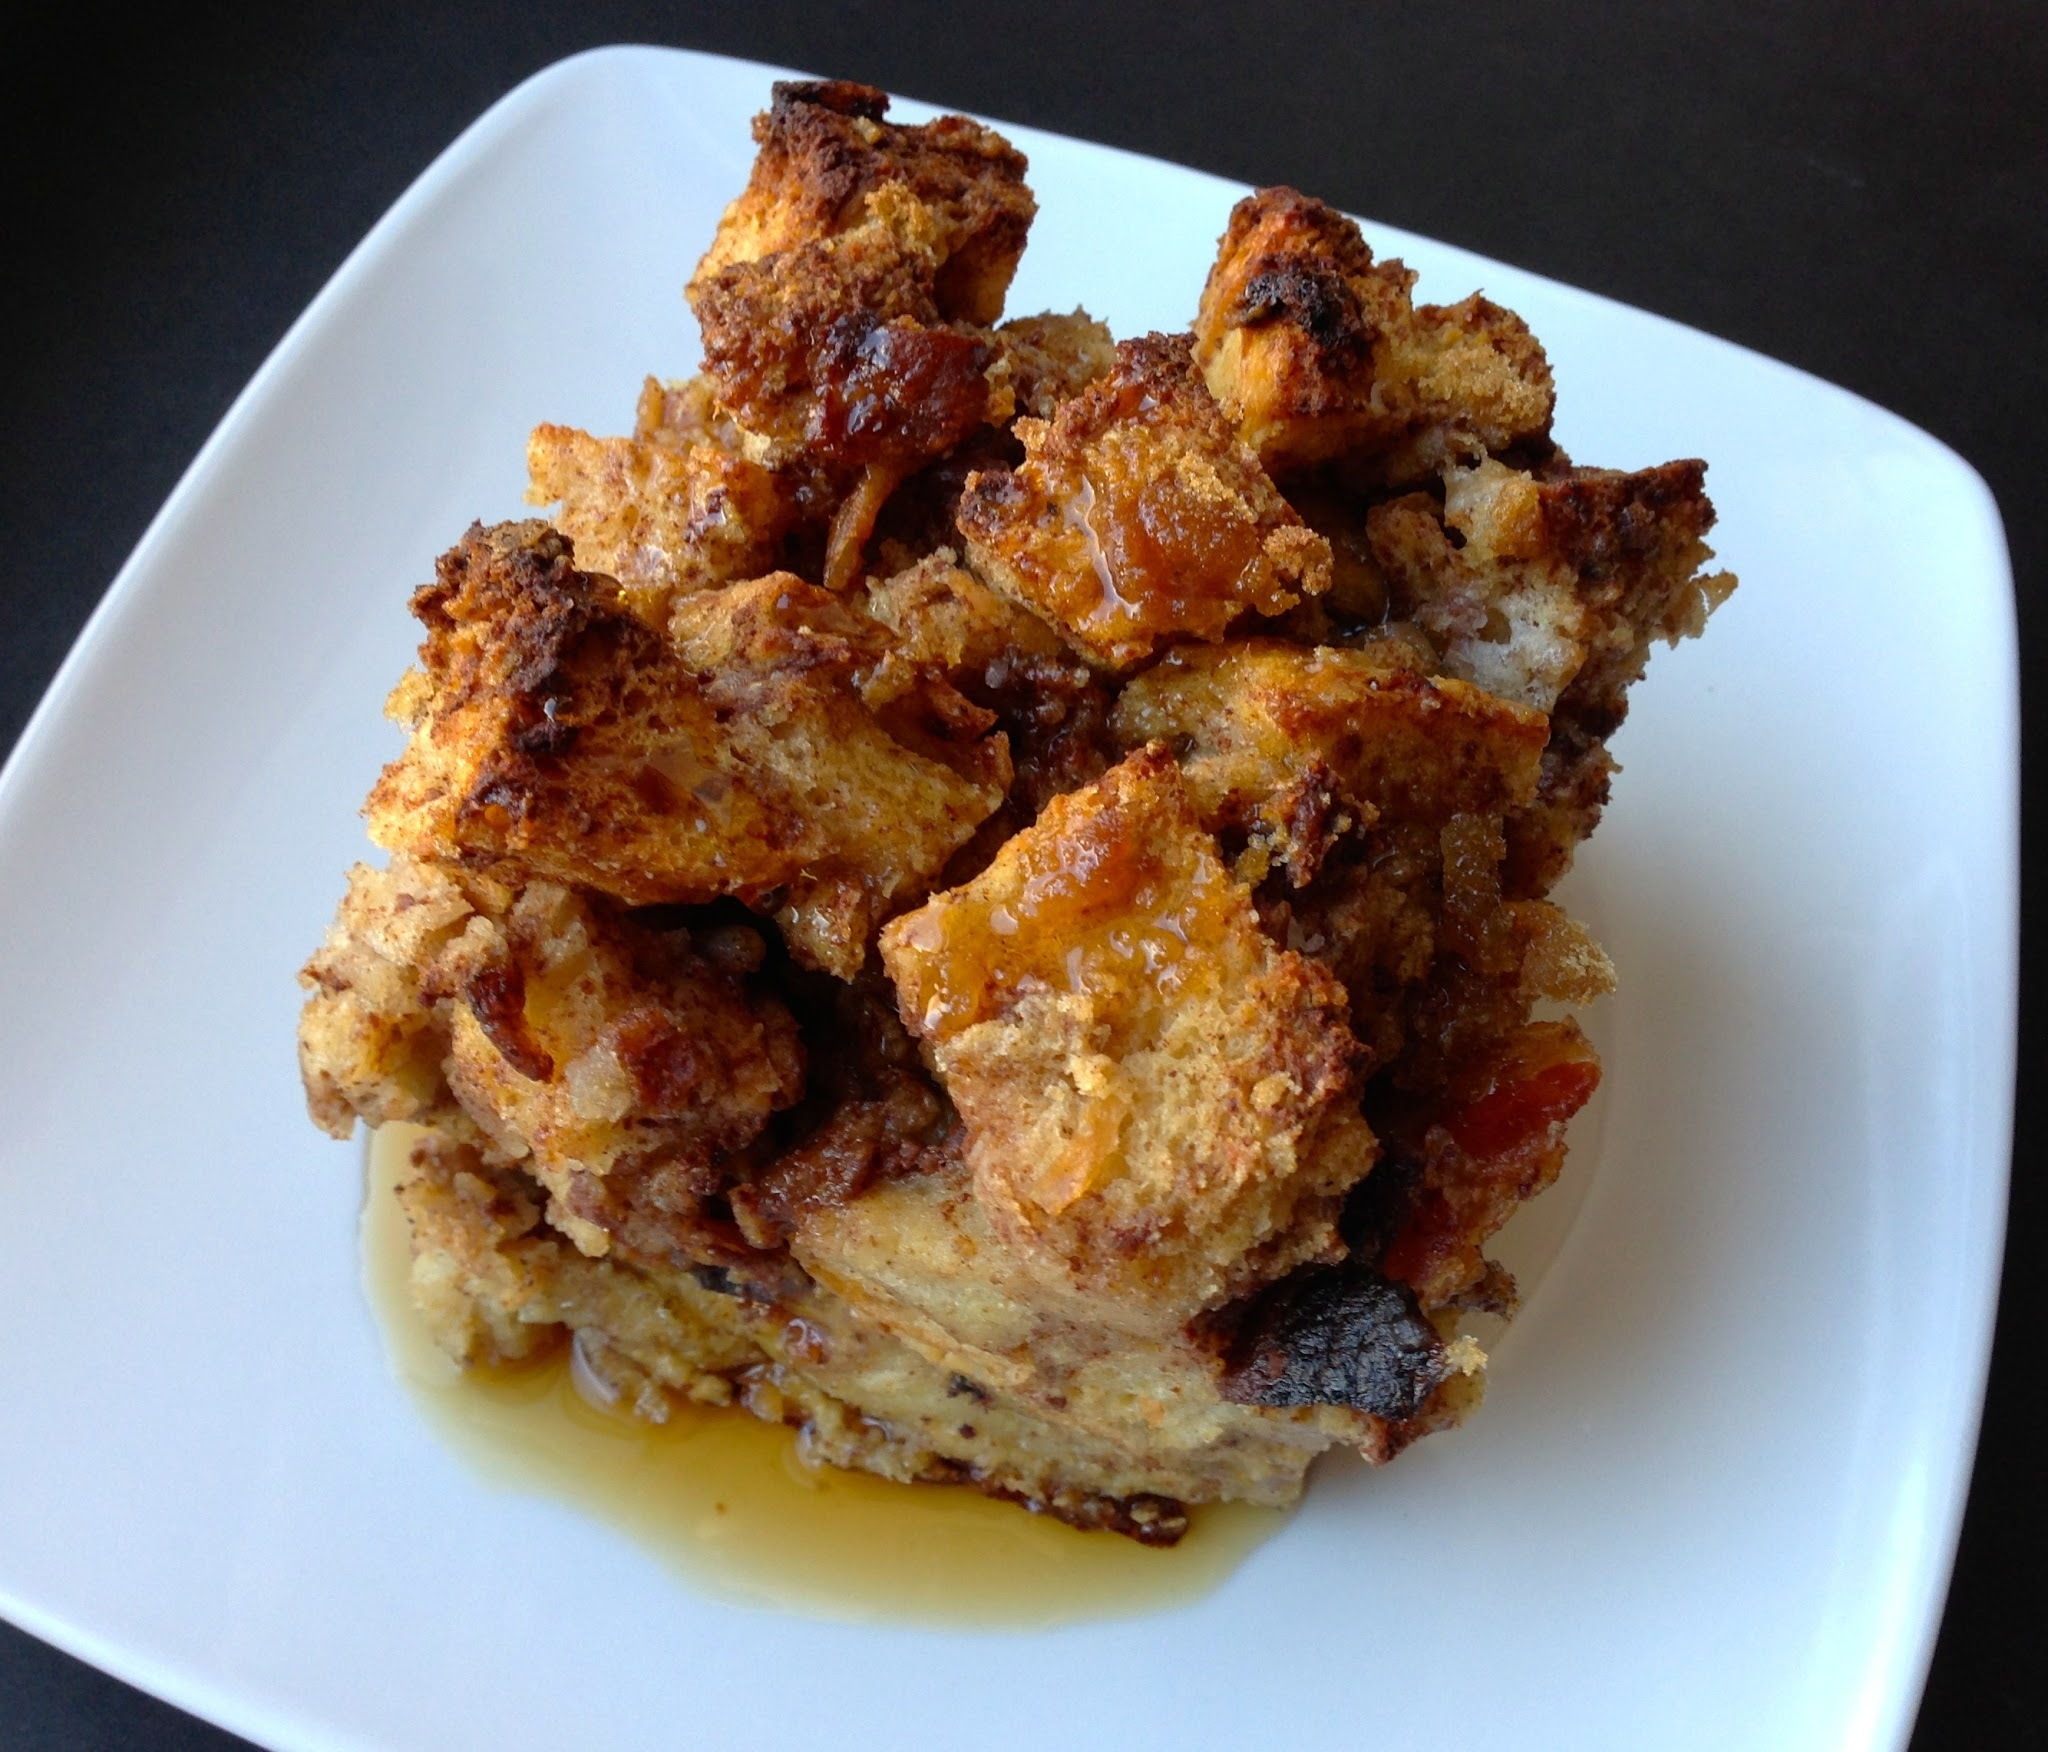 Cinnamon French Toast Bake with Bacon